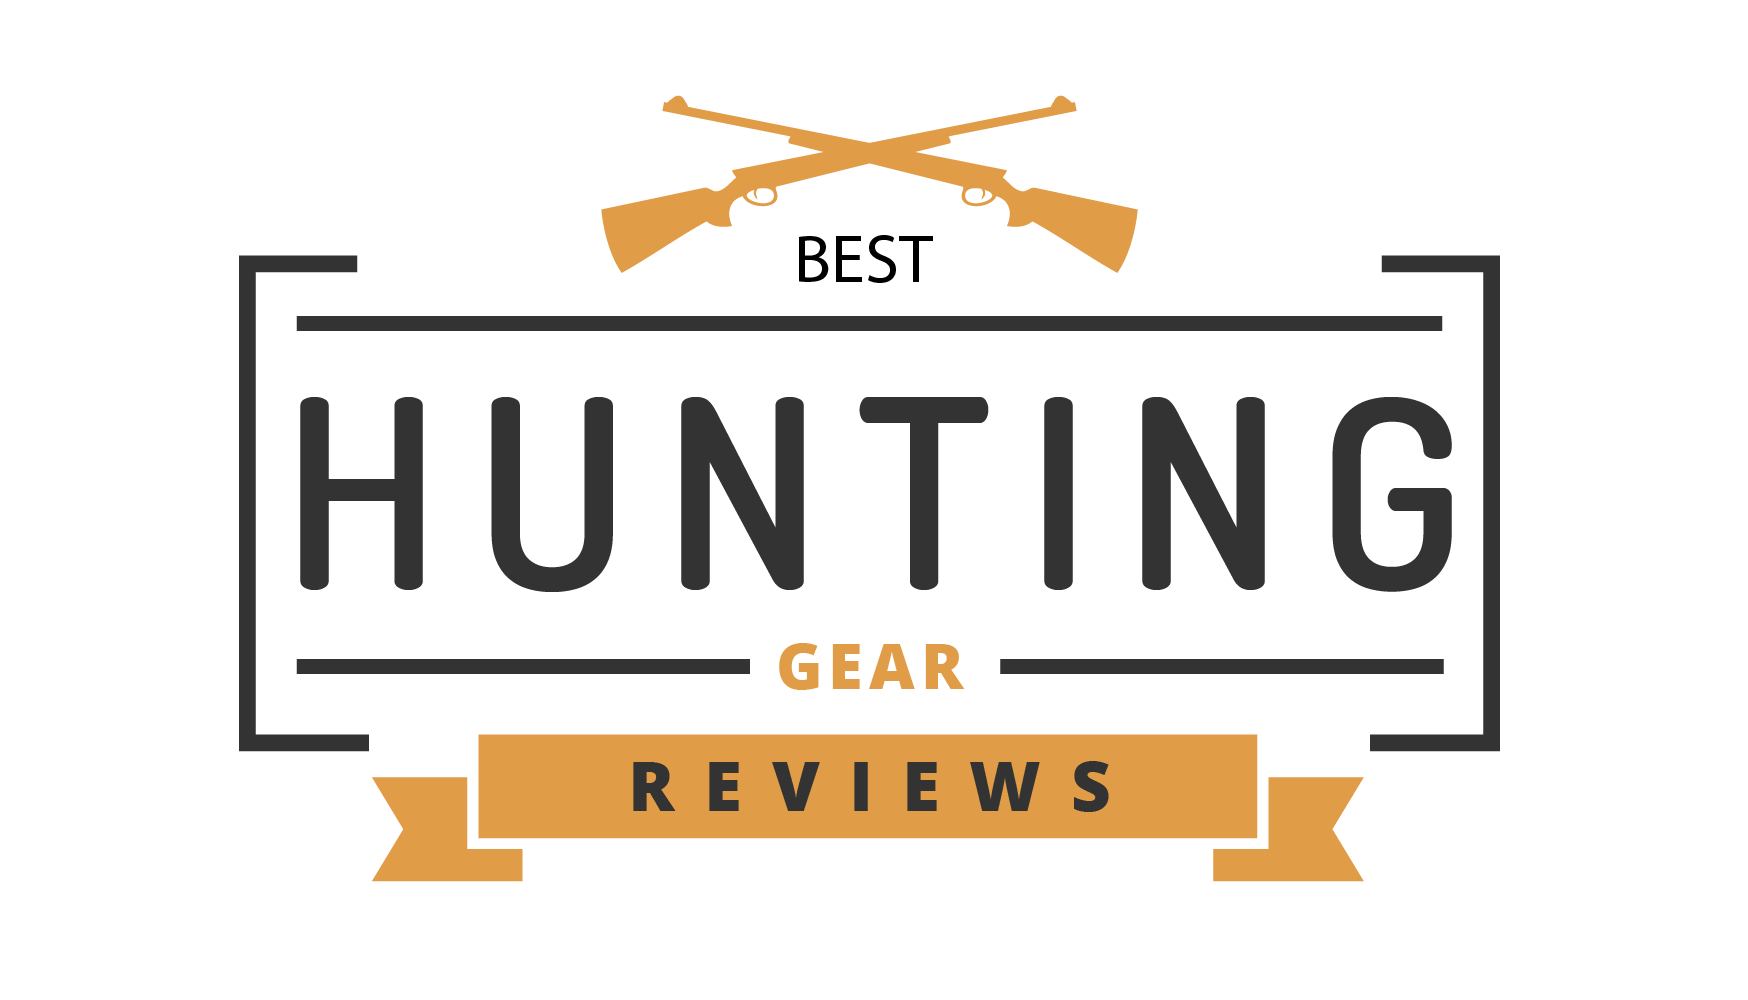 Best Hunting Gear Reviews